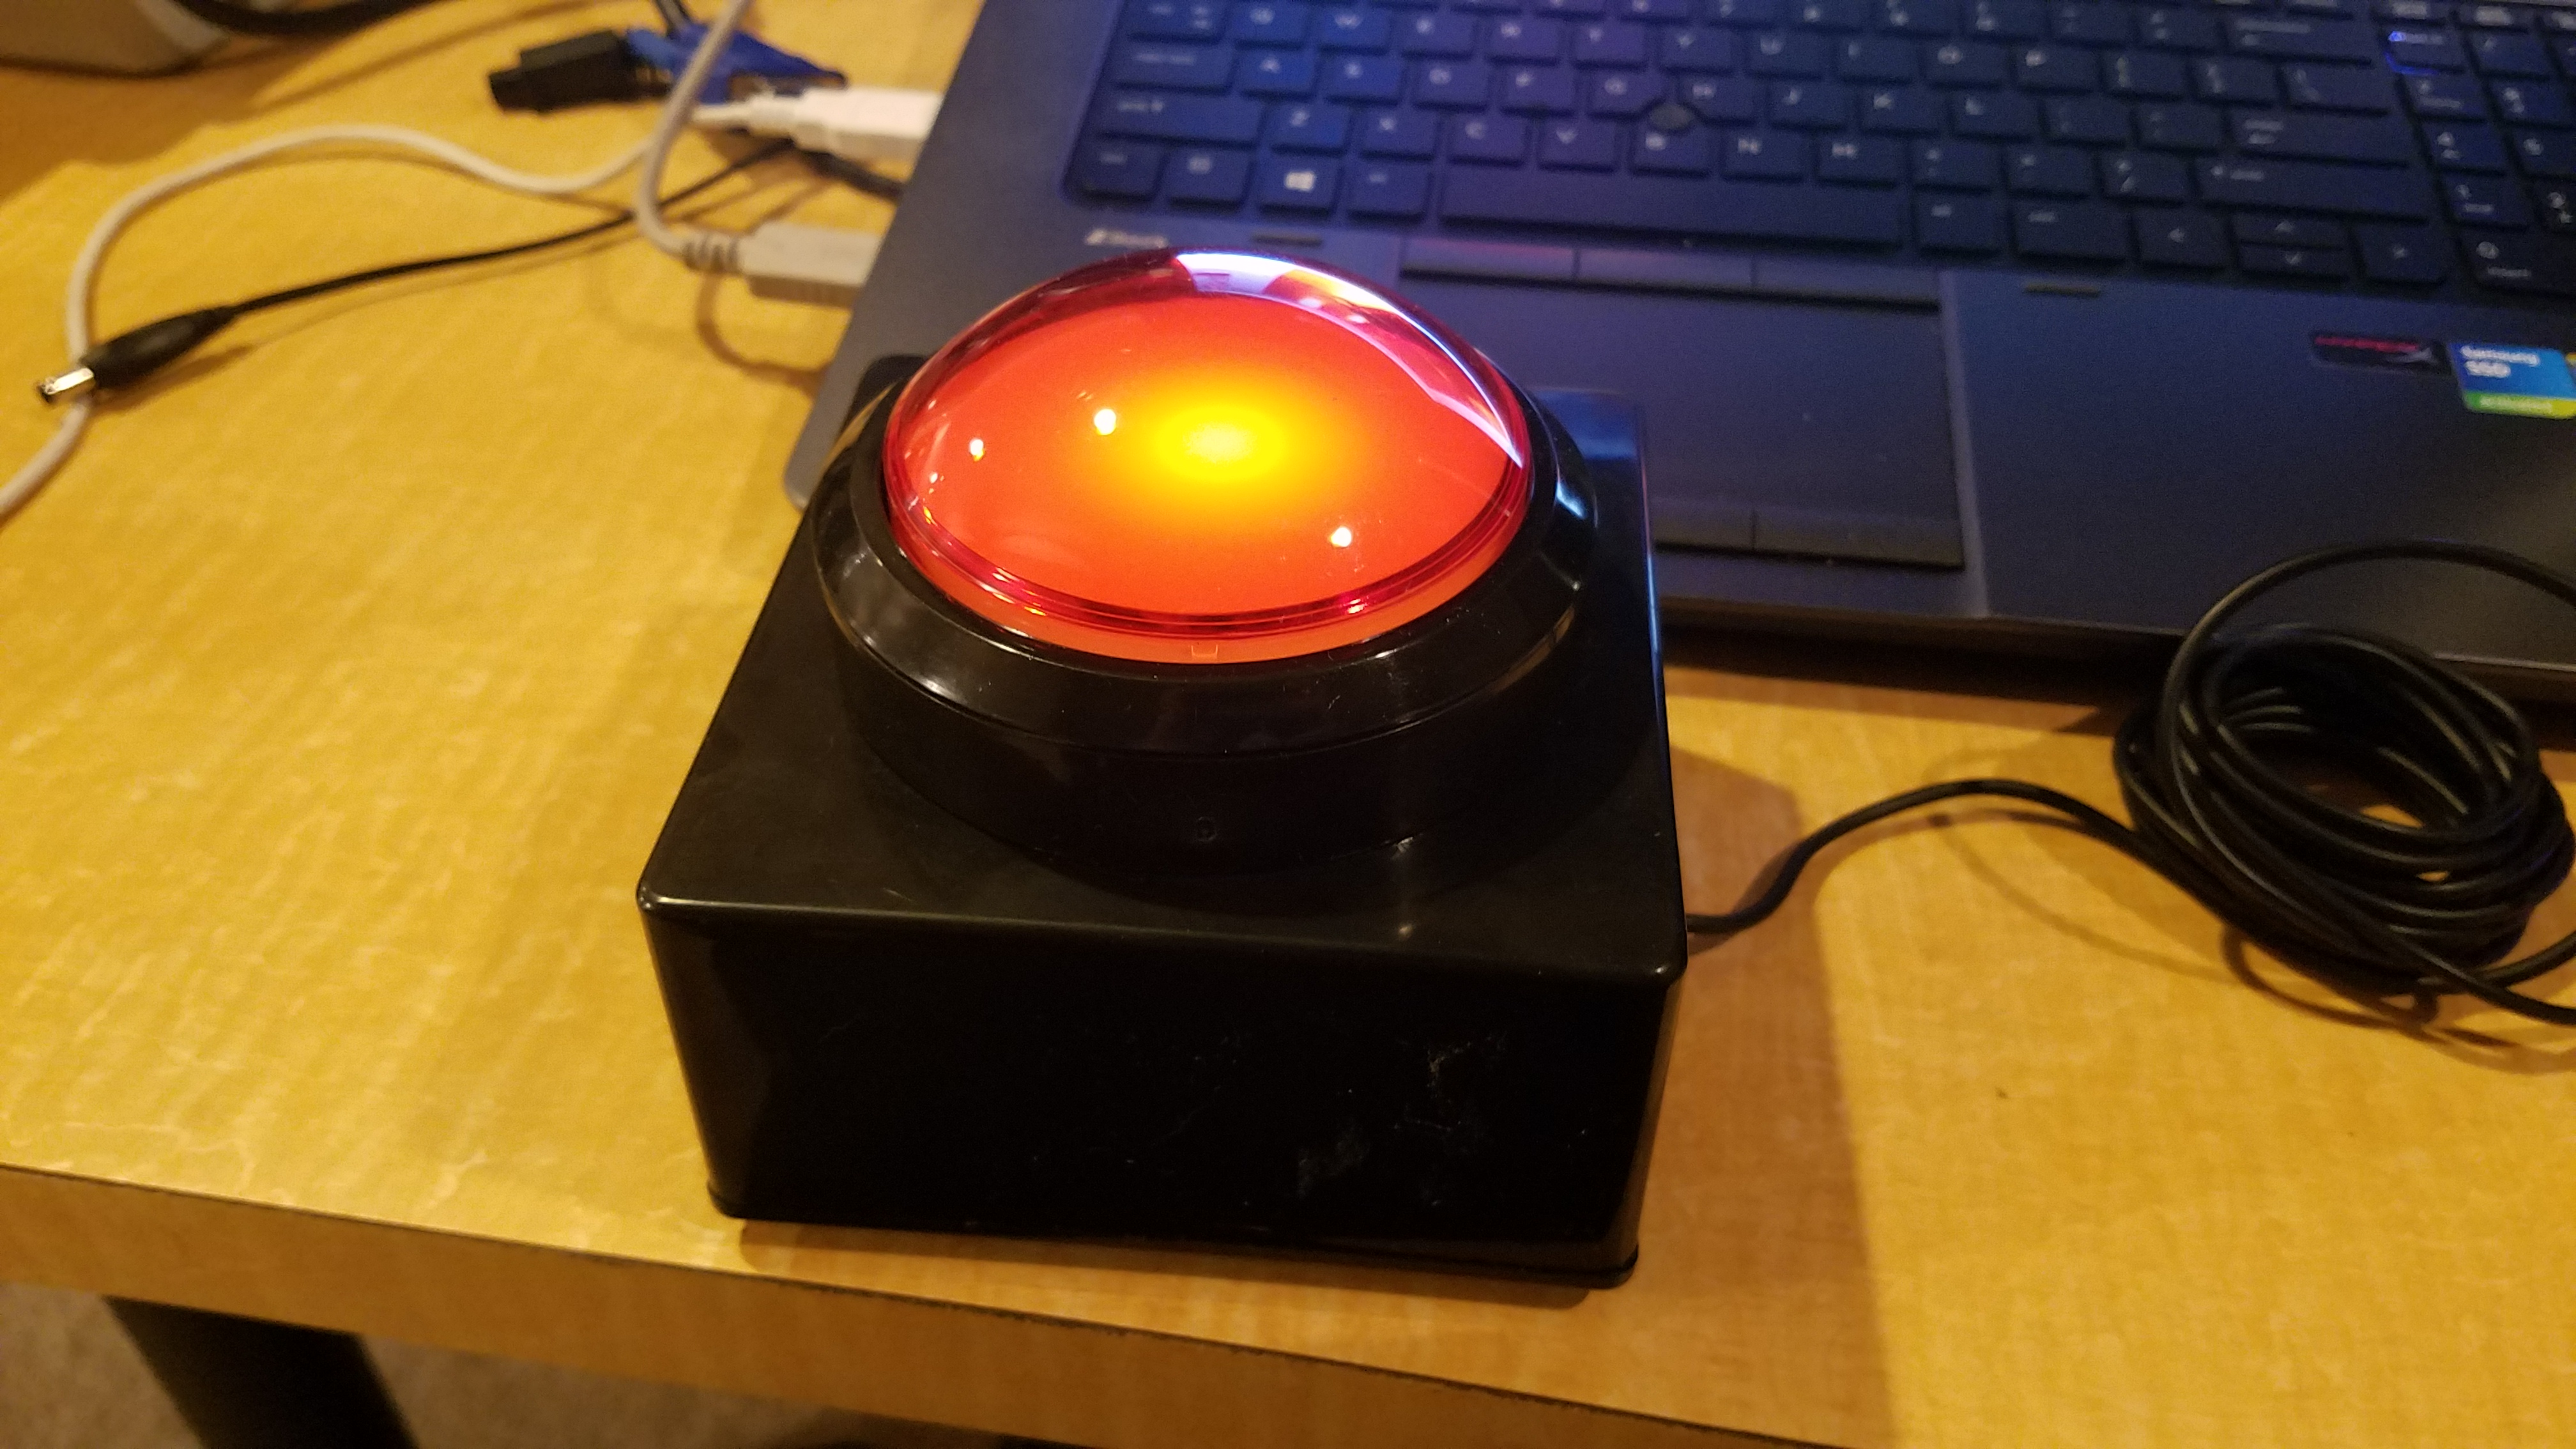 Picture of Photo Booth Big Red Button: Teensy LC